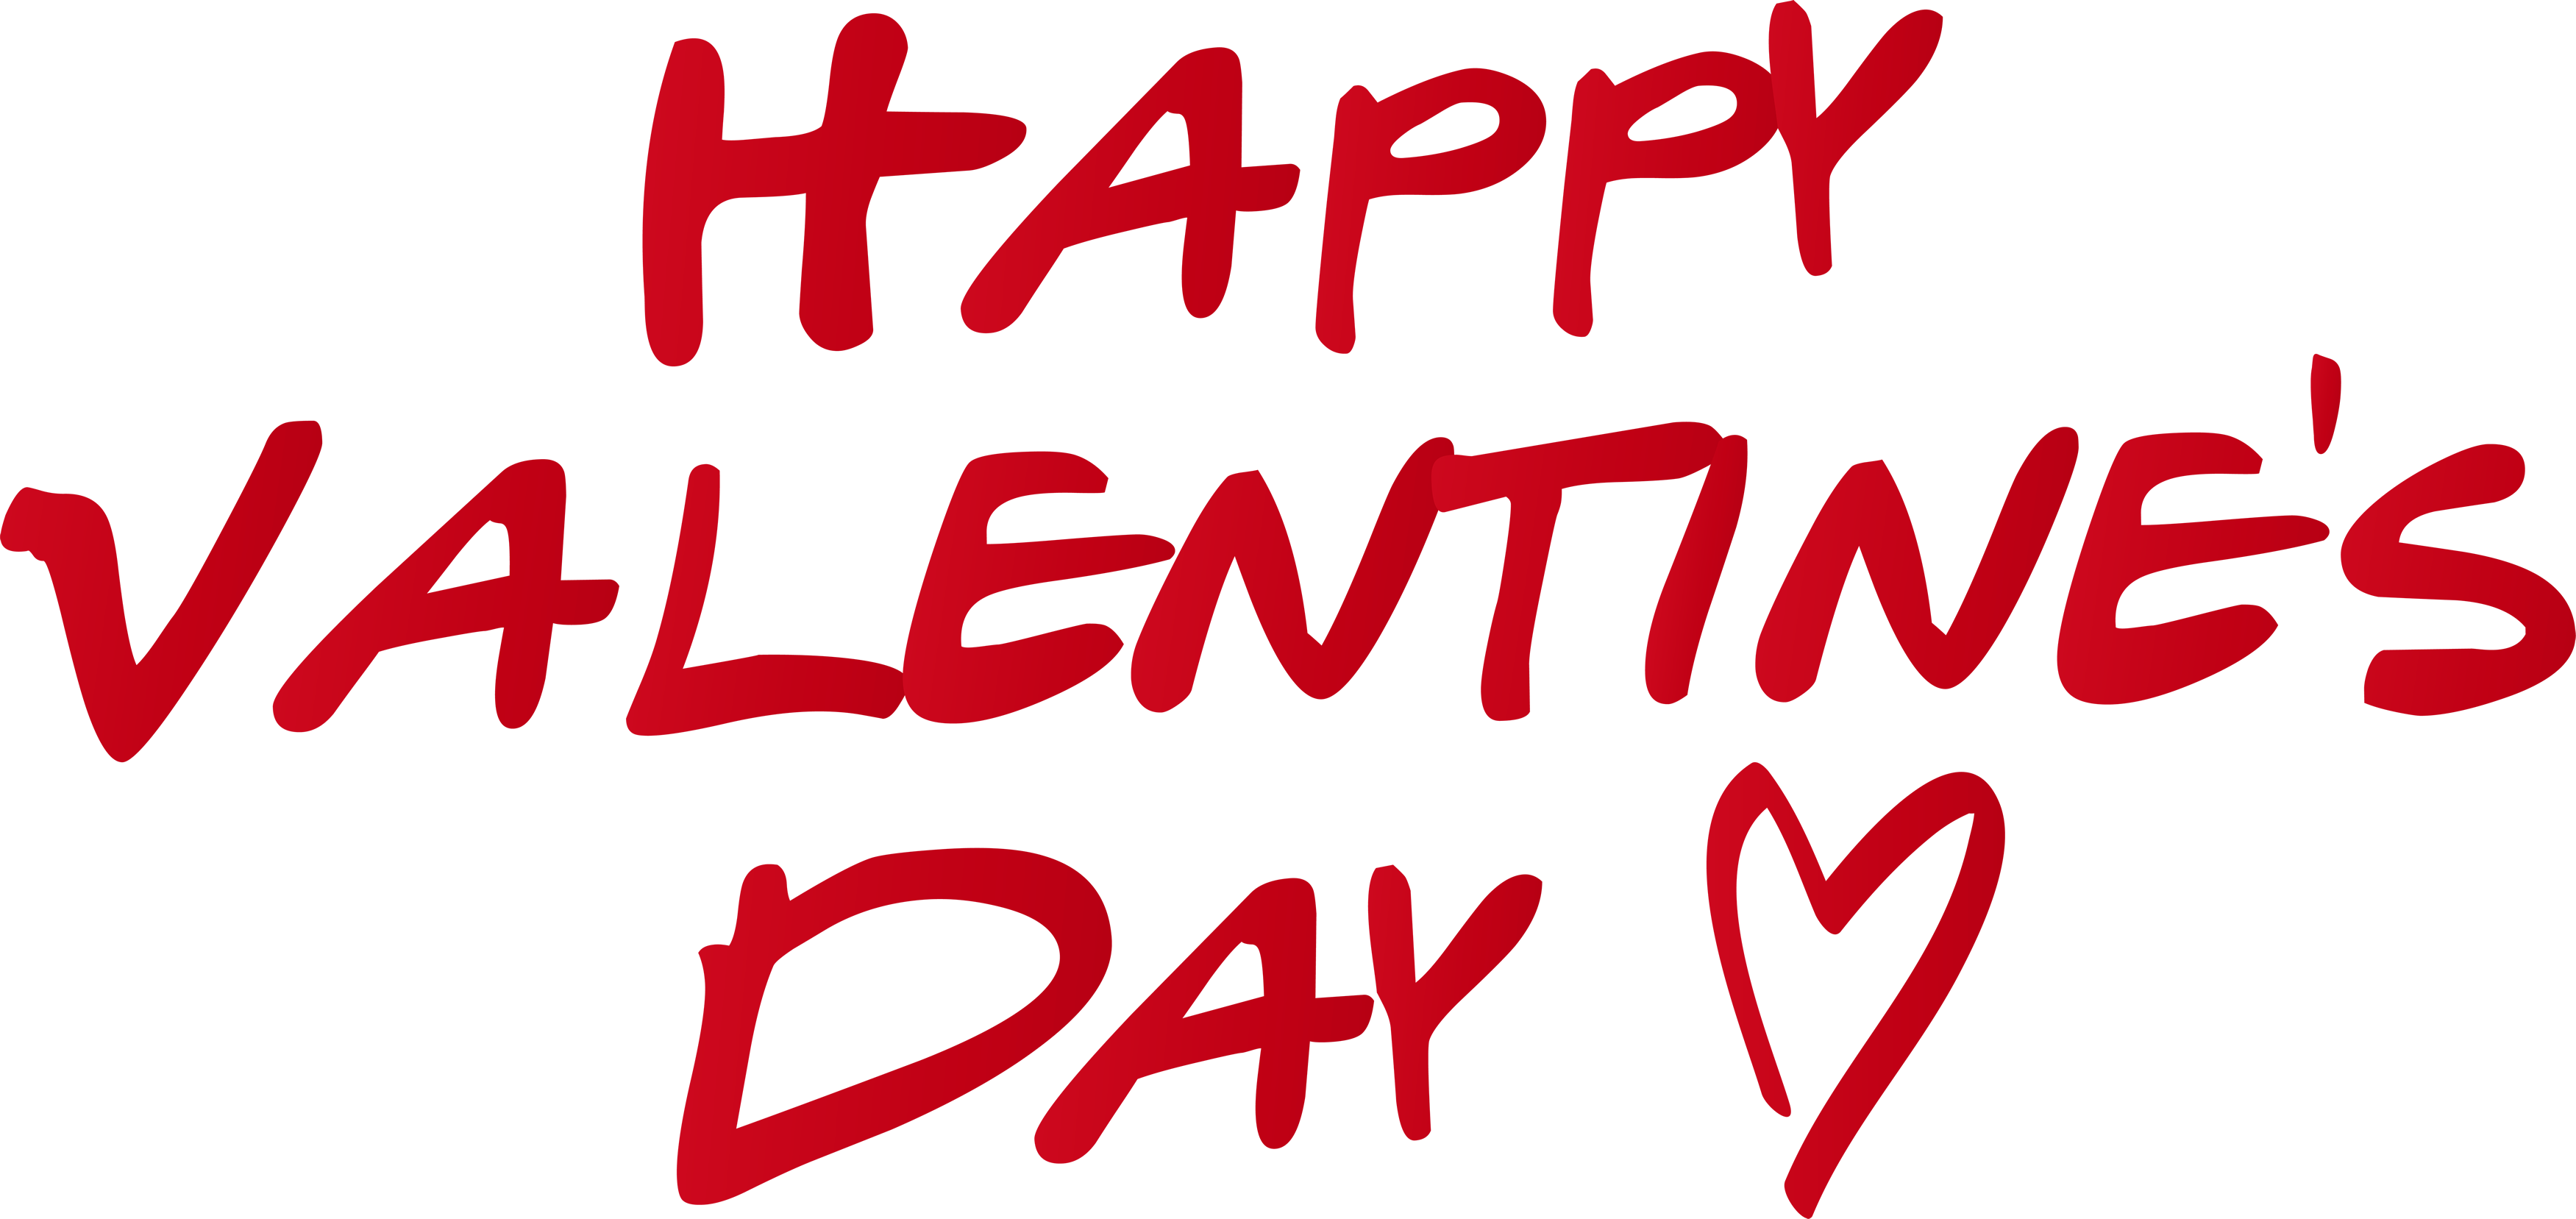 Family day png hd. Words clipart valentines